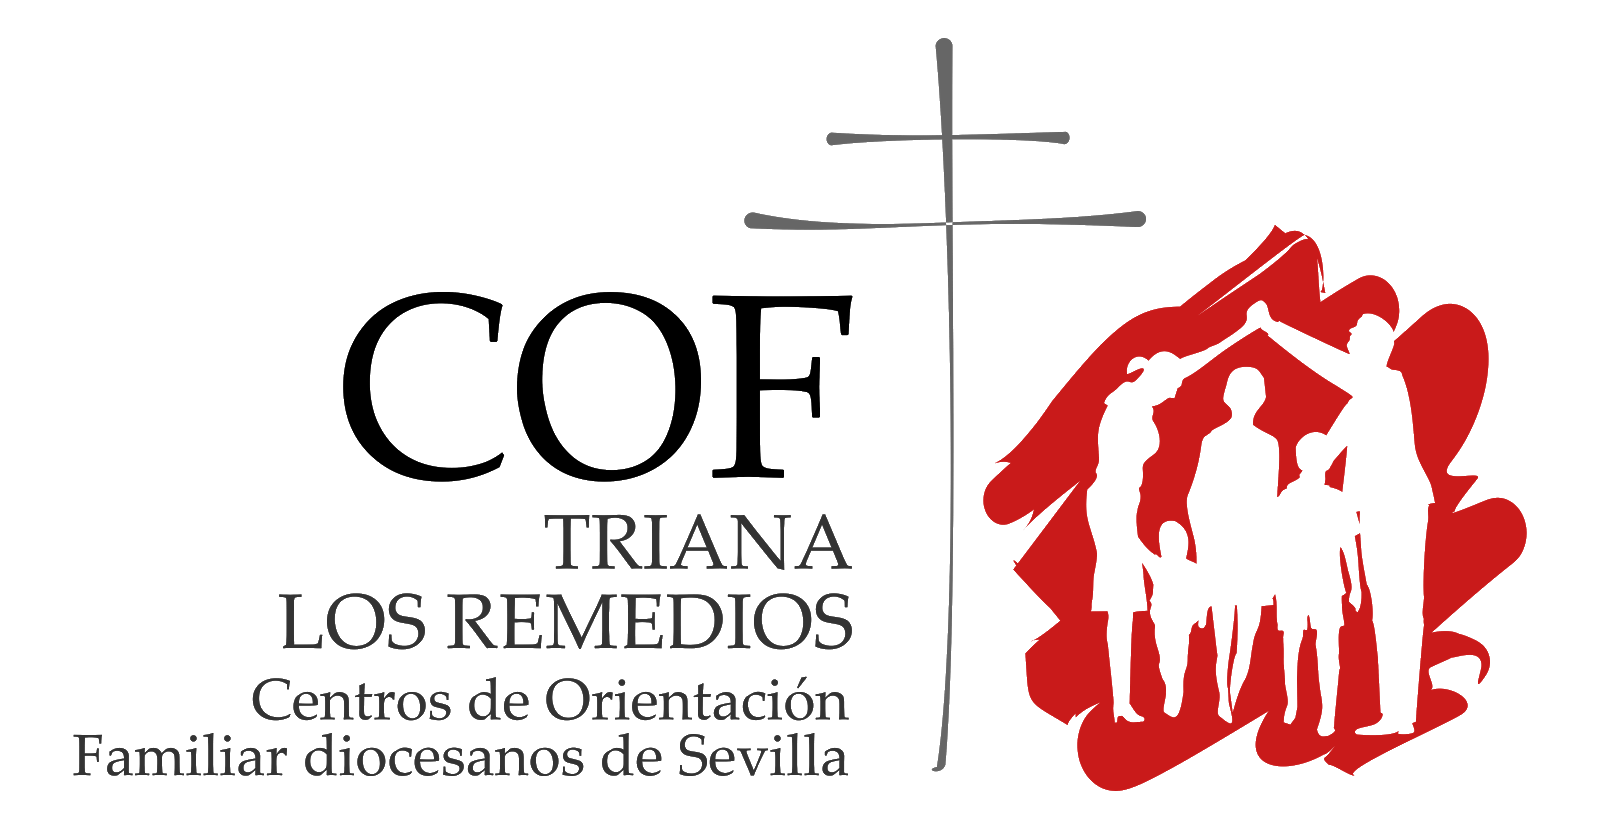 COF TRIANA - LOS REMEDIOS